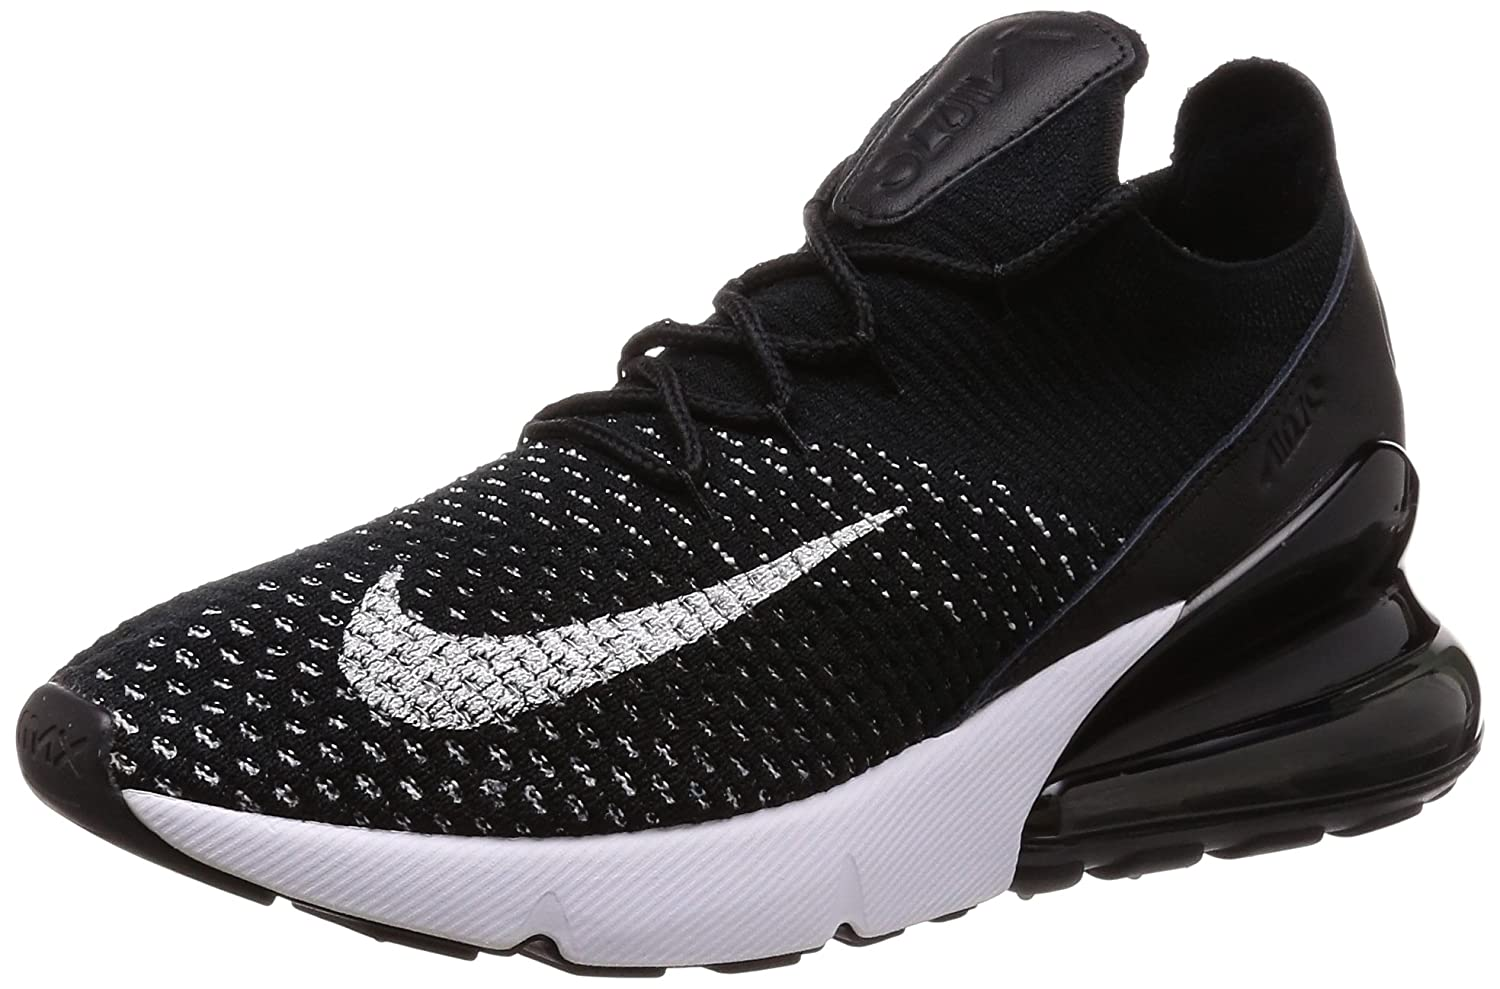 half off 9b552 5ecf4 Amazon.com  Nike Womens Air Max 270 Flyknit Running Trainers Ah6803  Sneakers Shoes  Running